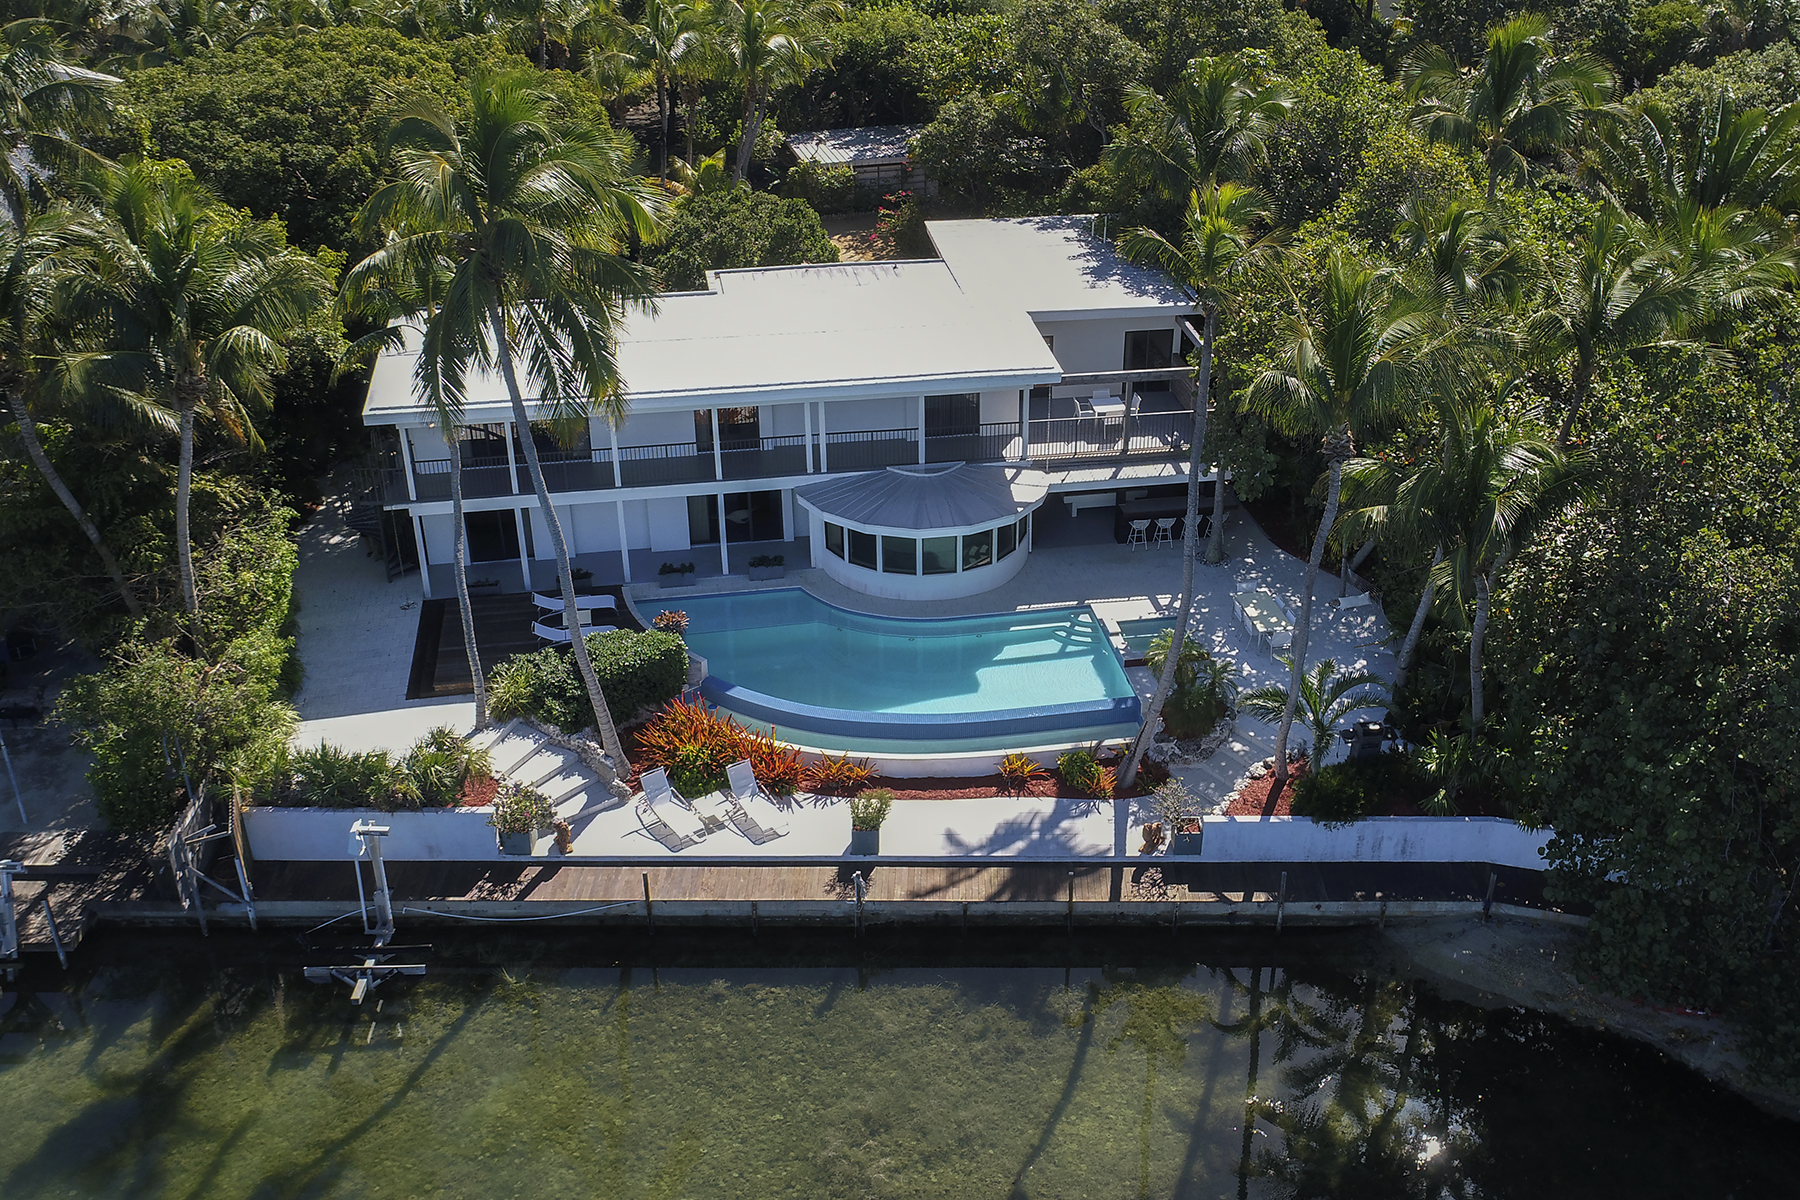 Single Family Home for Sale at Iconic Bayfront Estate 140 Madeira Road Islamorada, Florida 33036 United States